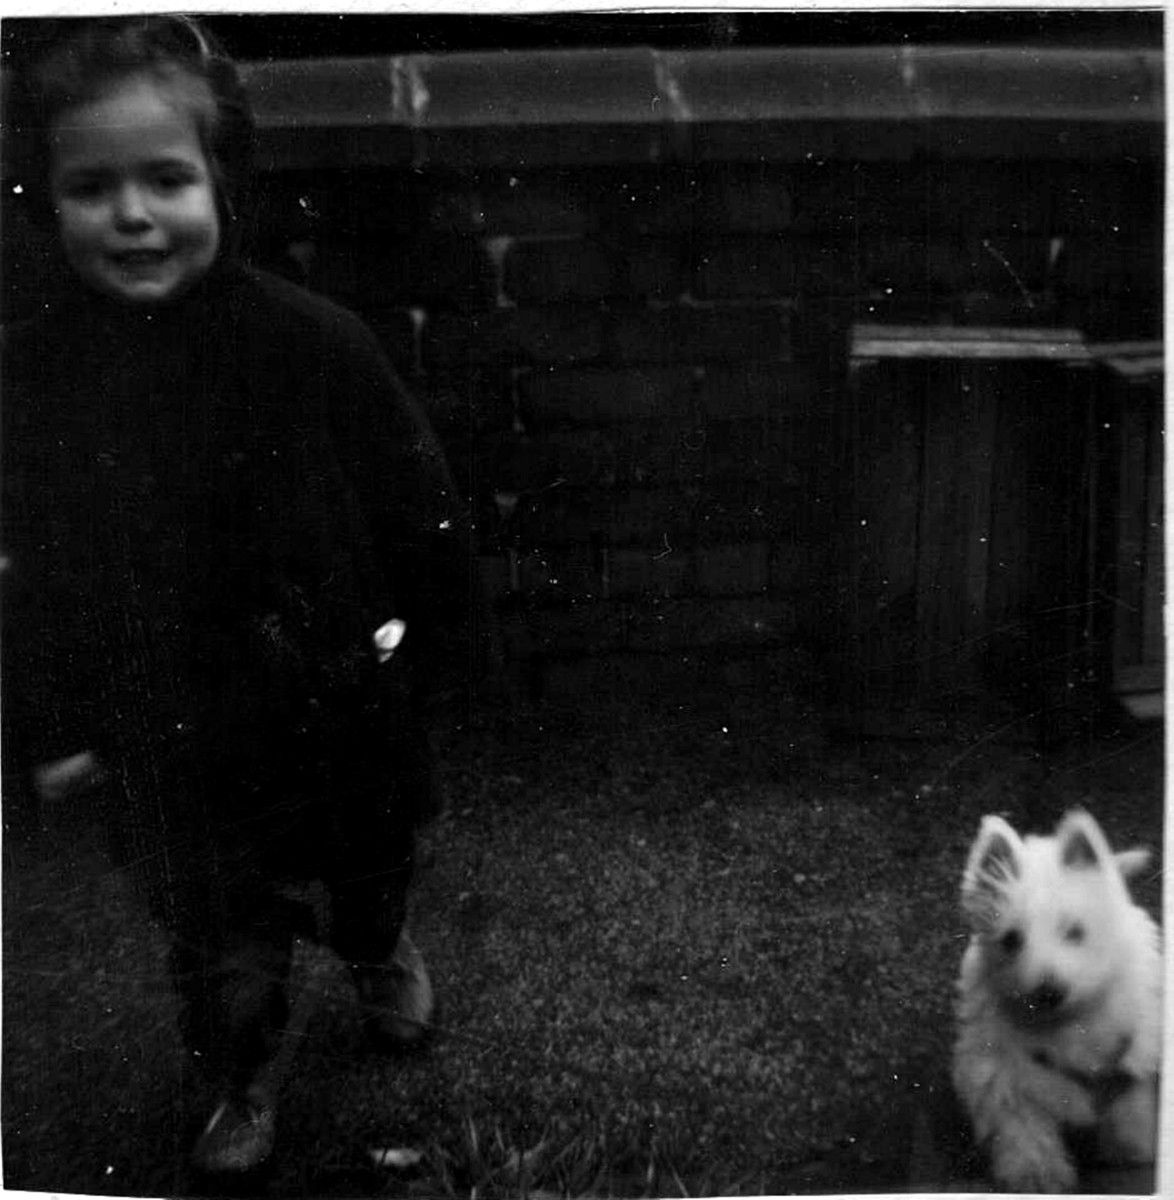 Me aged about 18 months with Mitzie - my West Highland Terrier - when she was a tiny puppy. We were inseparable from this time onwards.